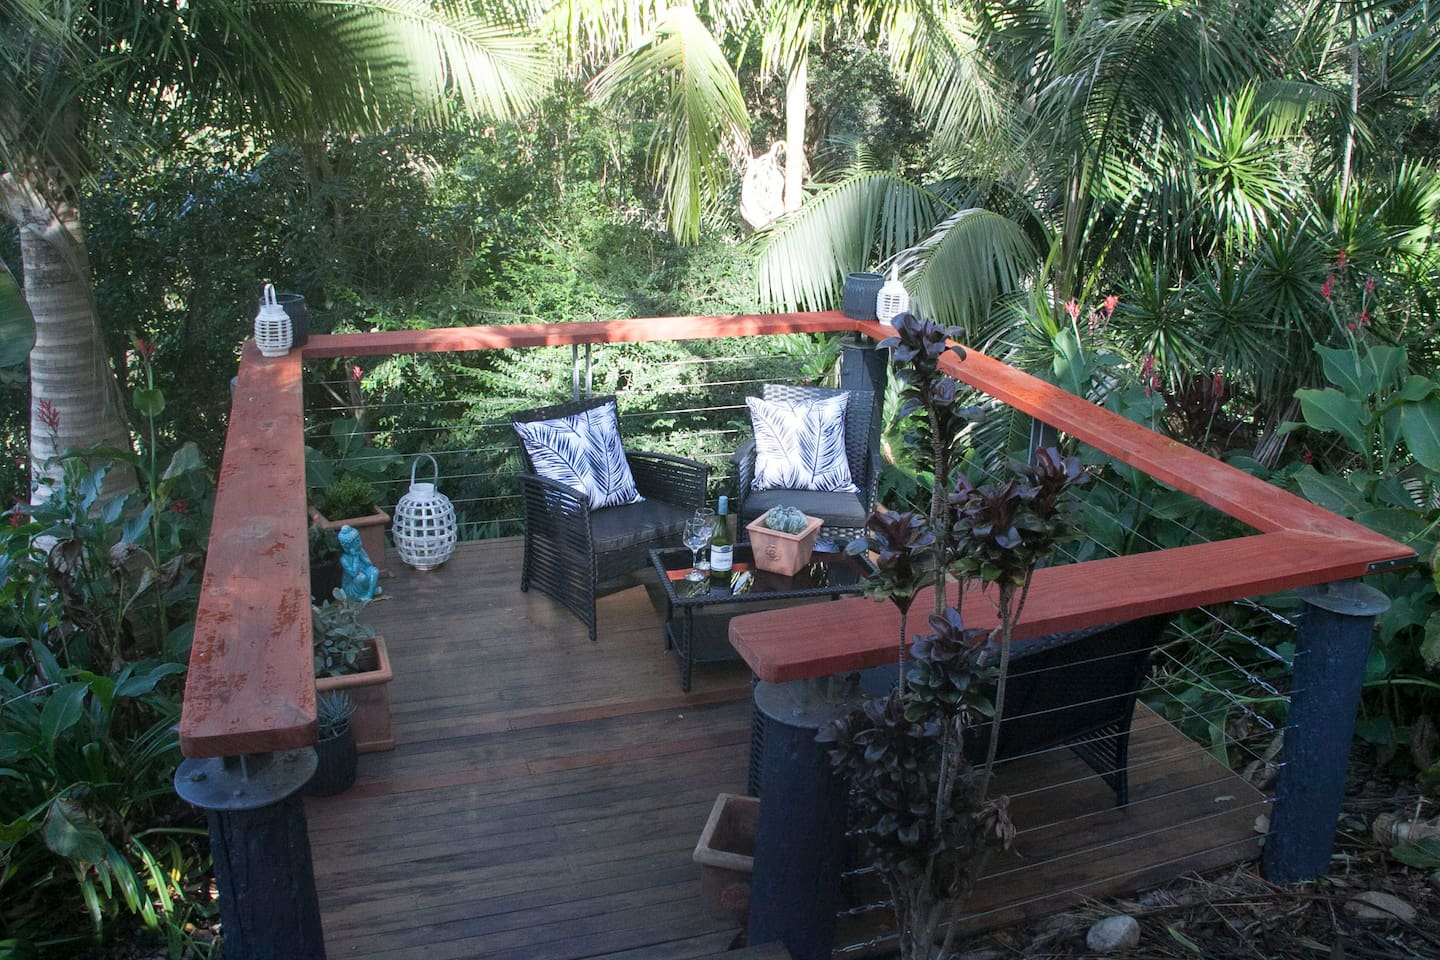 Tranquil decking amidst the garden private for the cottage guests.